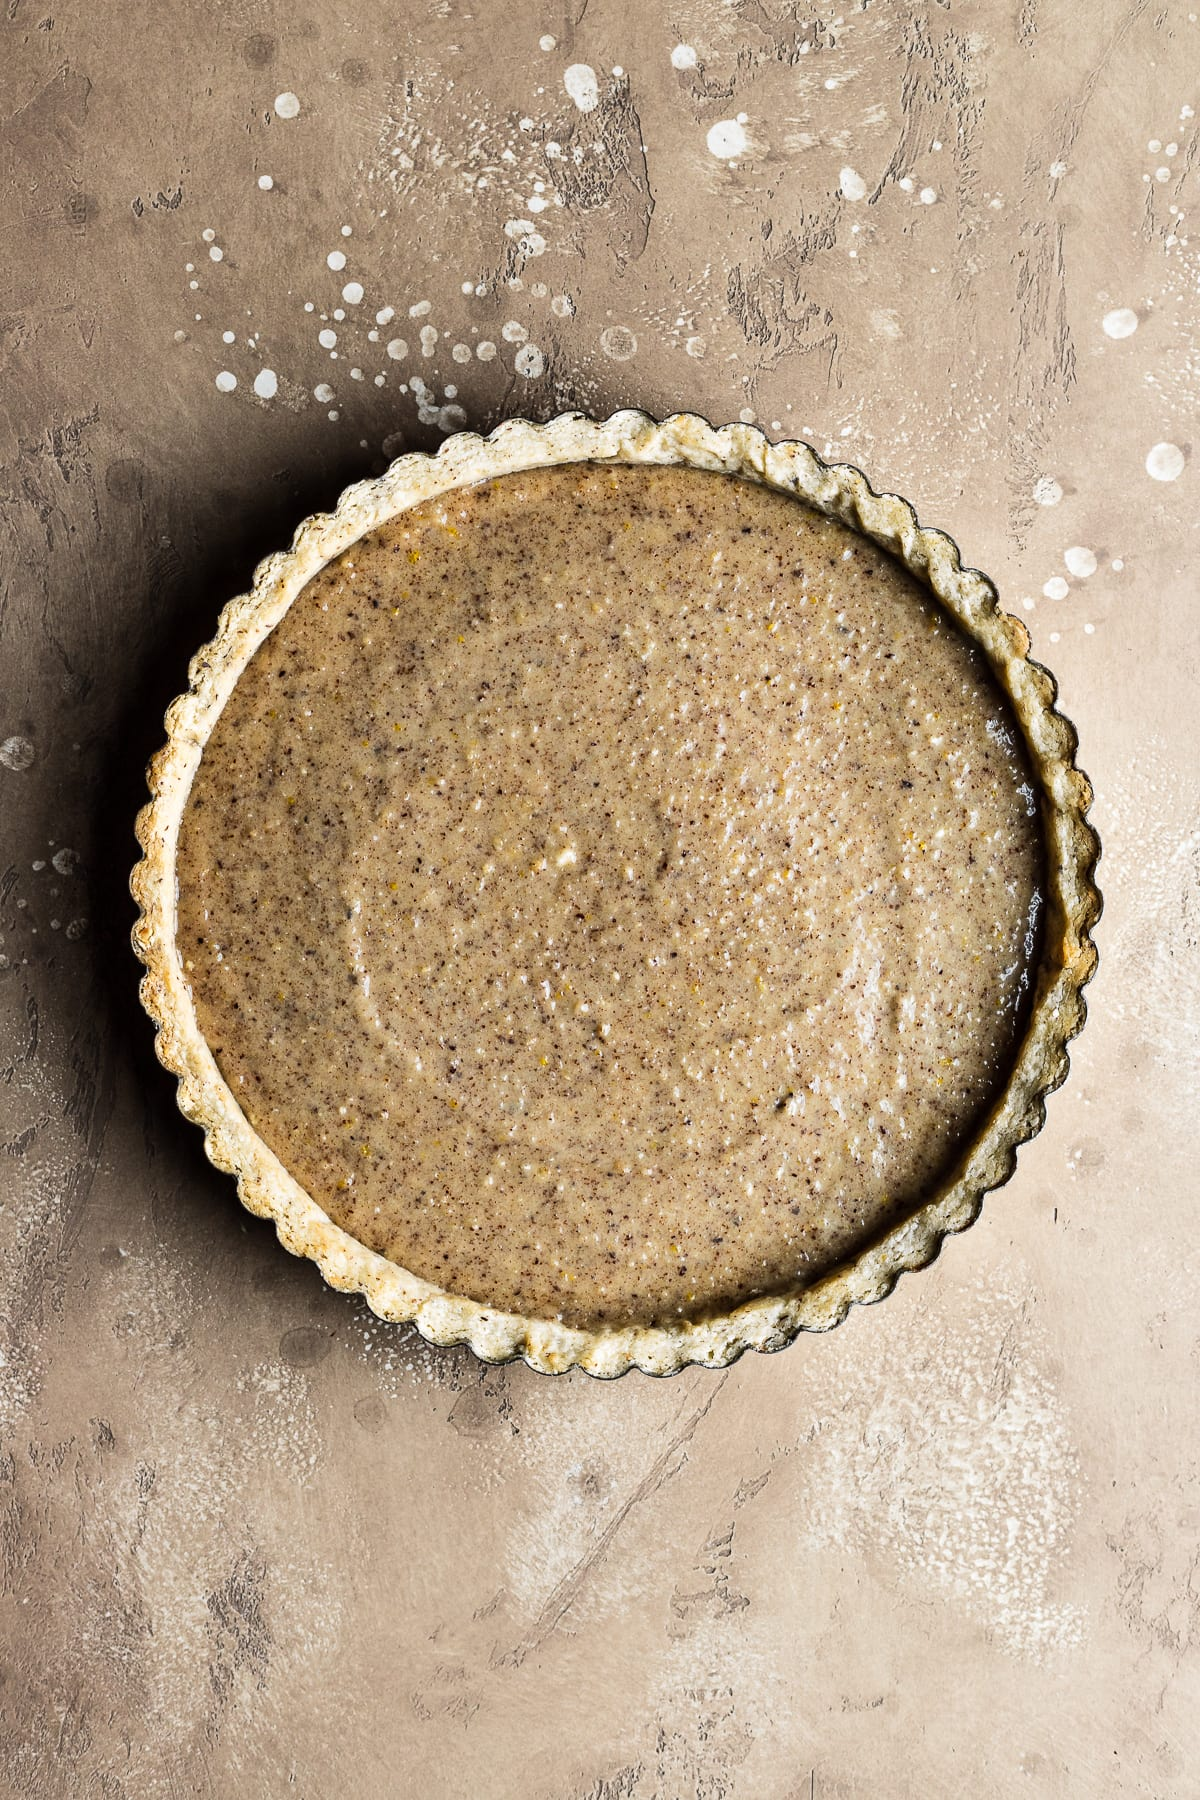 A blind baked round tart crust filled with hazelnut frangipane resting on a textured speckled tan background.